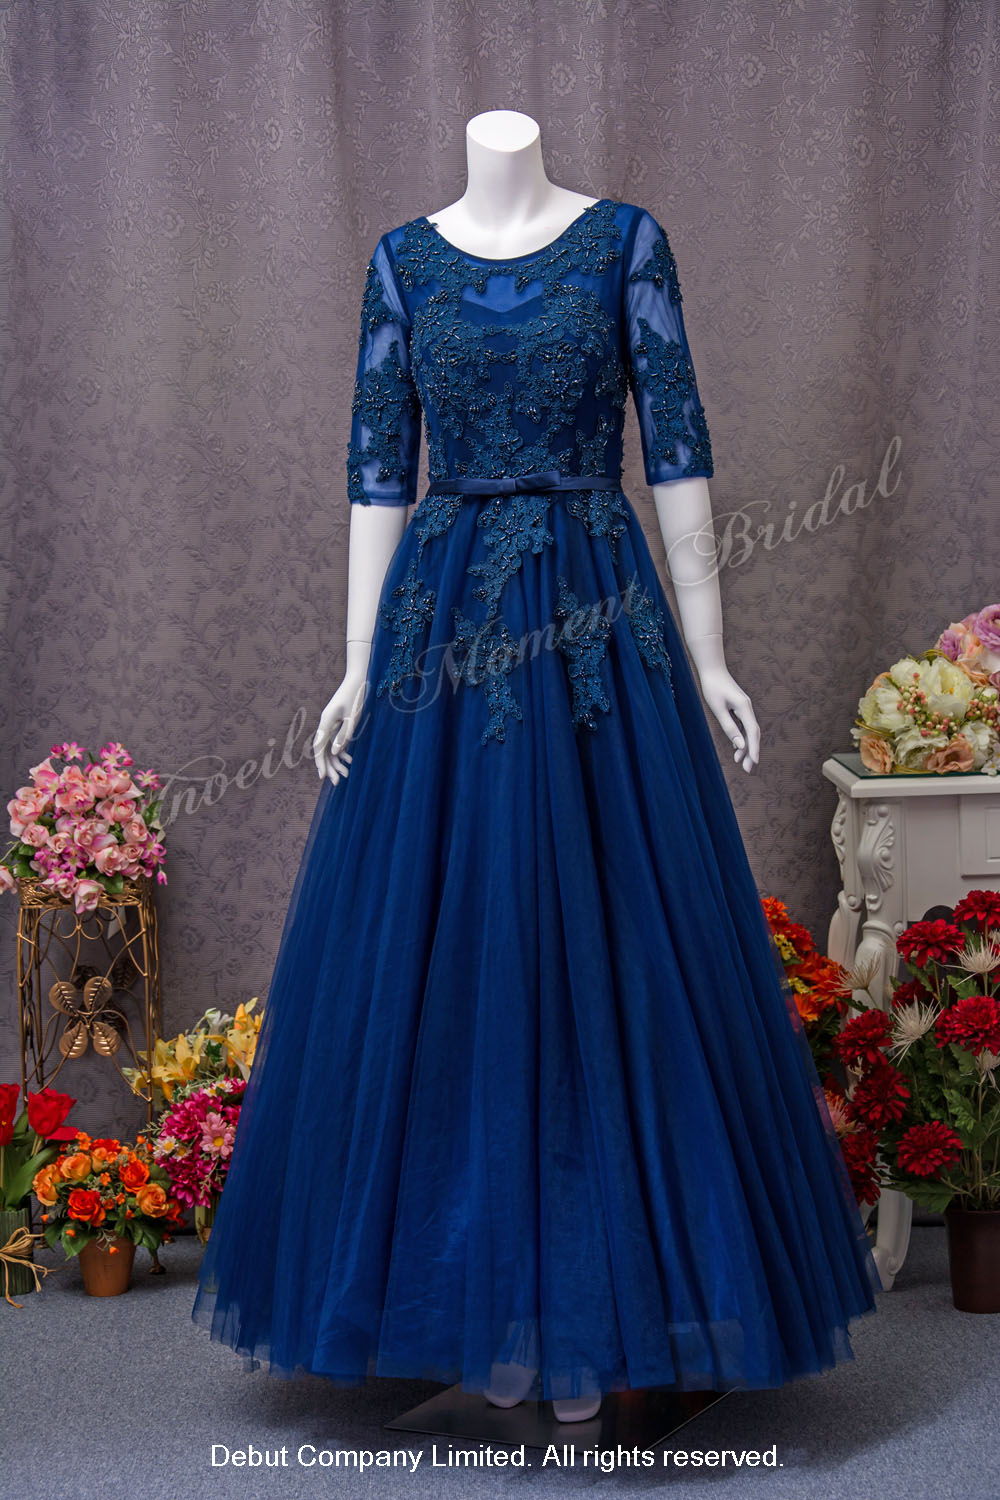 Lace applique embellishments, See-through sweetheart neckline, See-through 3/4 sleeves, A-line Evening Dress. Colour: Royal Blue. 蕾絲釘珠, 透視圓領中袖, 心形胸, 寶藍色A-line晚裝